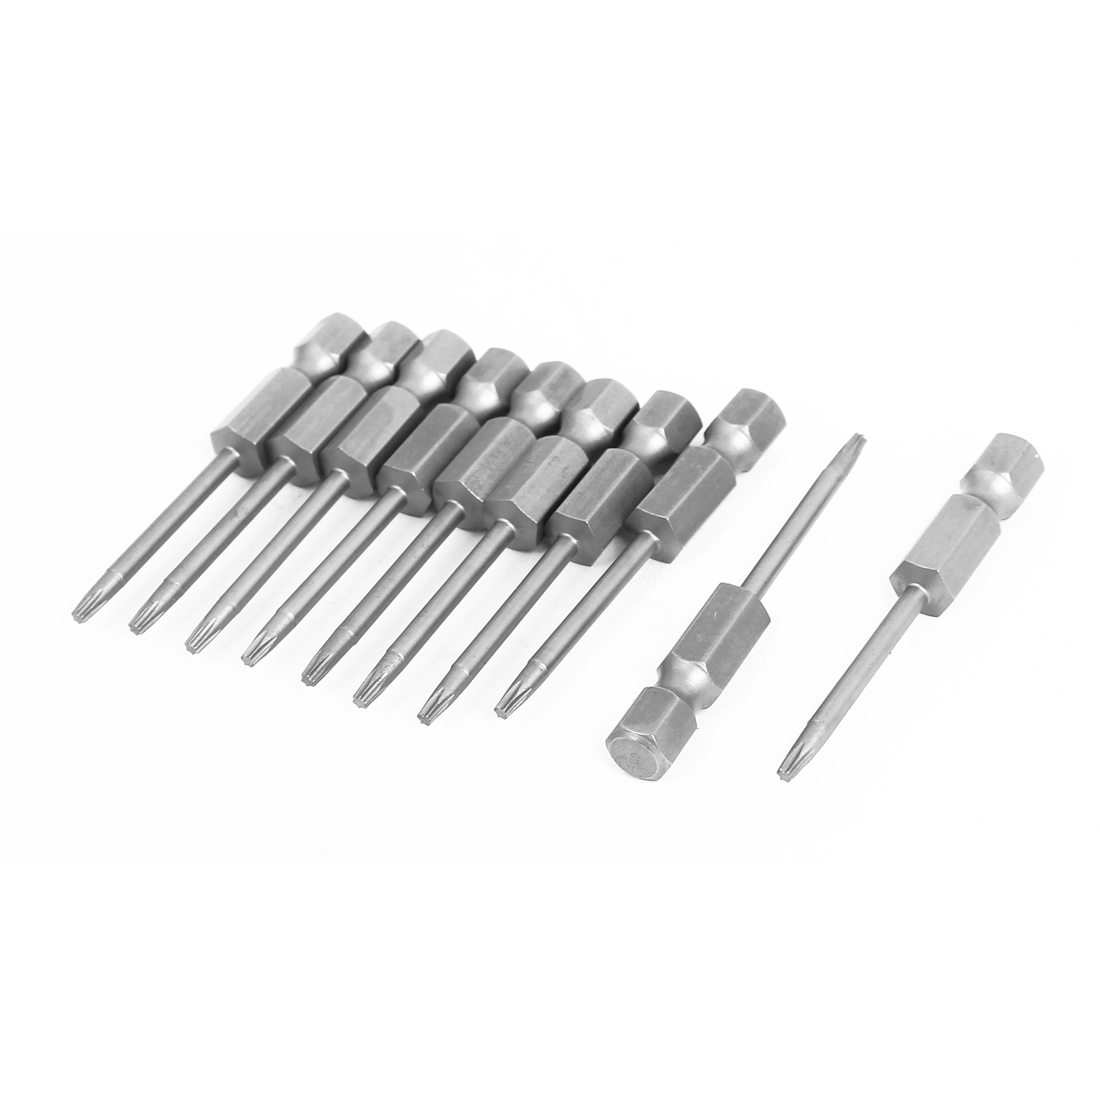 "T7 Tip 1/4"" Hex Shank 50mm Long Magnetic Torx Screwdriver Bits 10pcs"